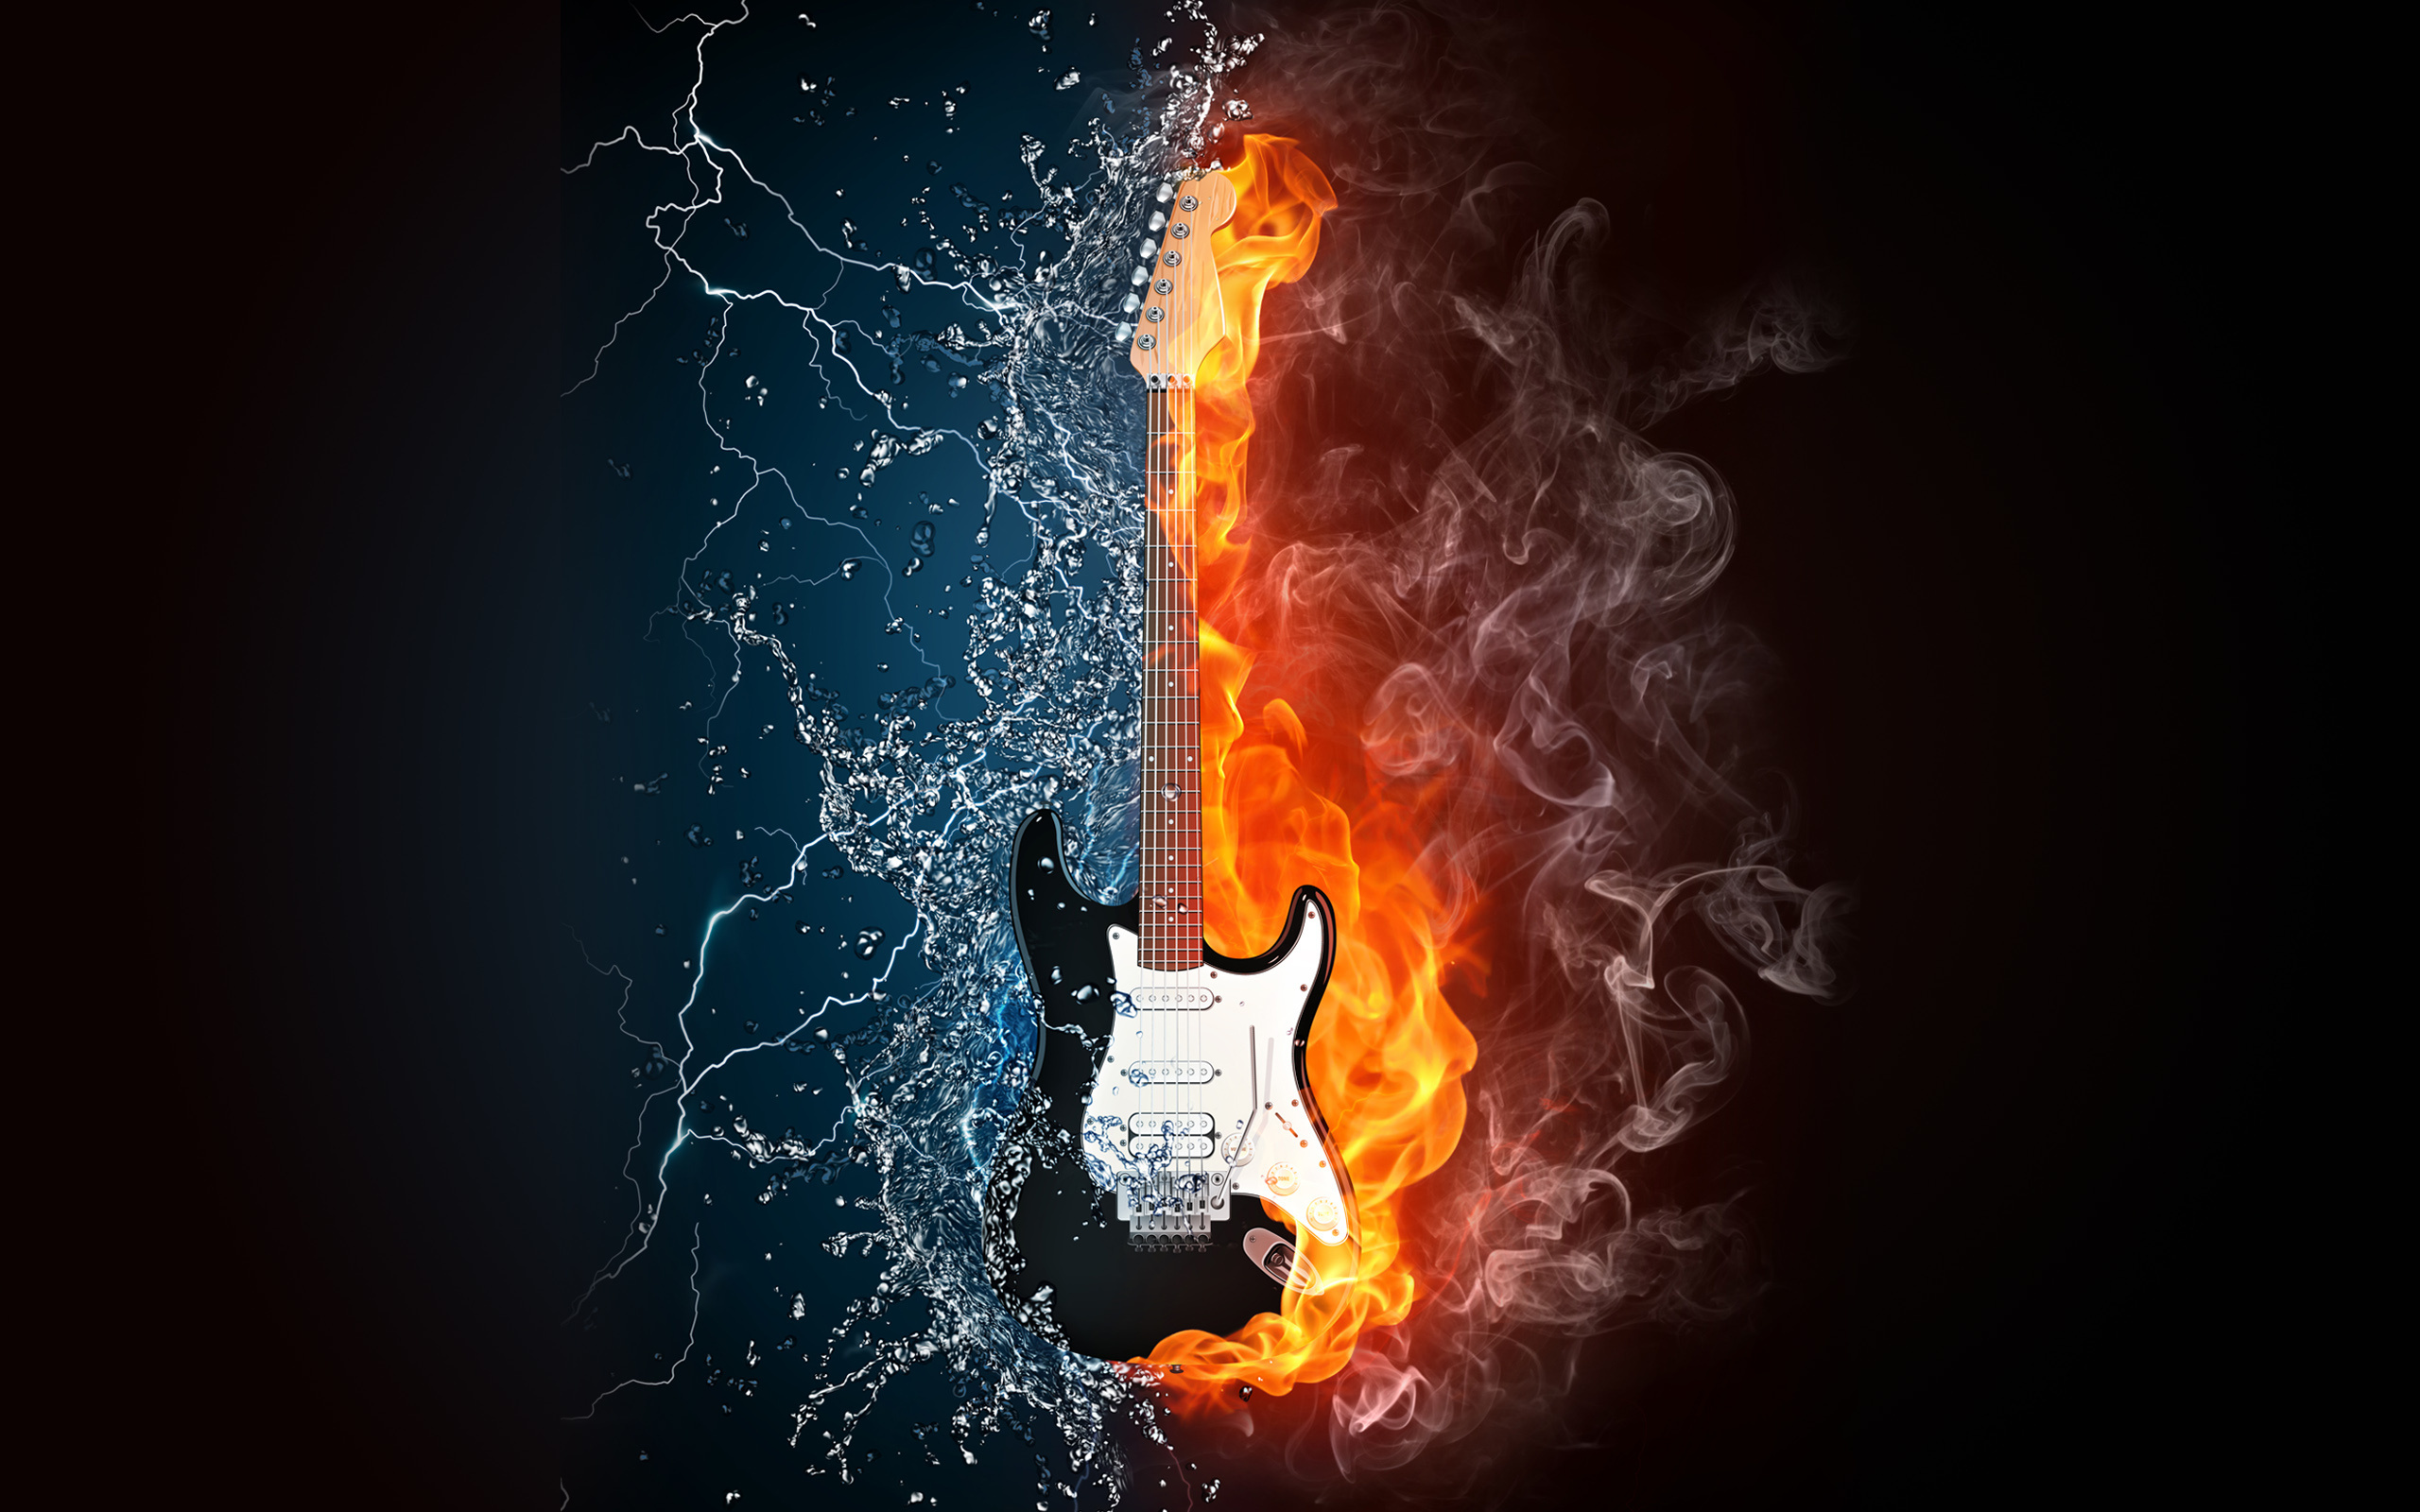 Guitar - Guitar Wallpaper (27368608) - Fanpop